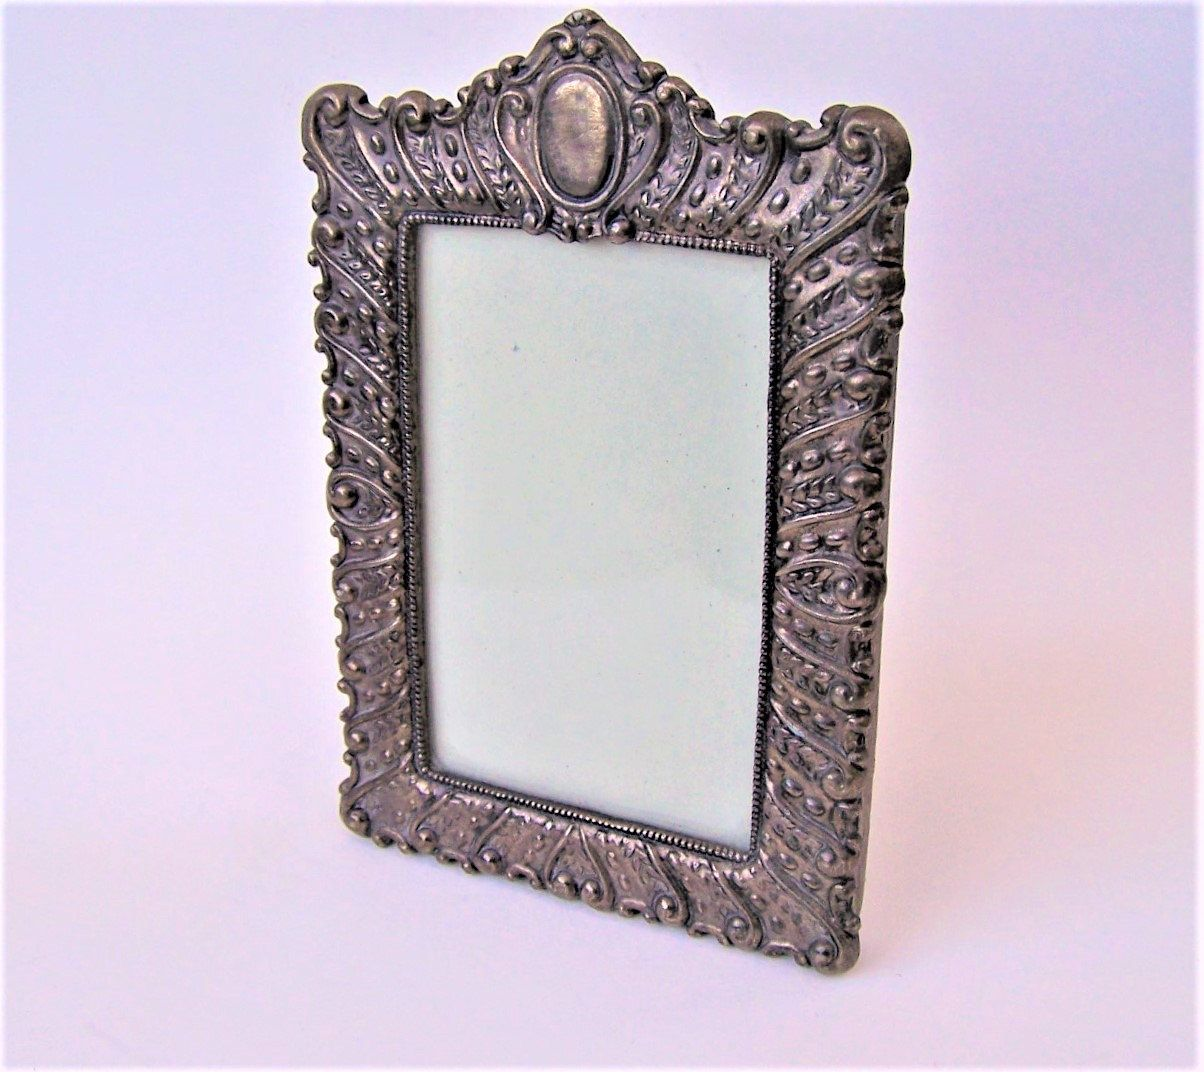 Antique Silver Victorian Era Ornate 4 X 6 Picture Frame by ...